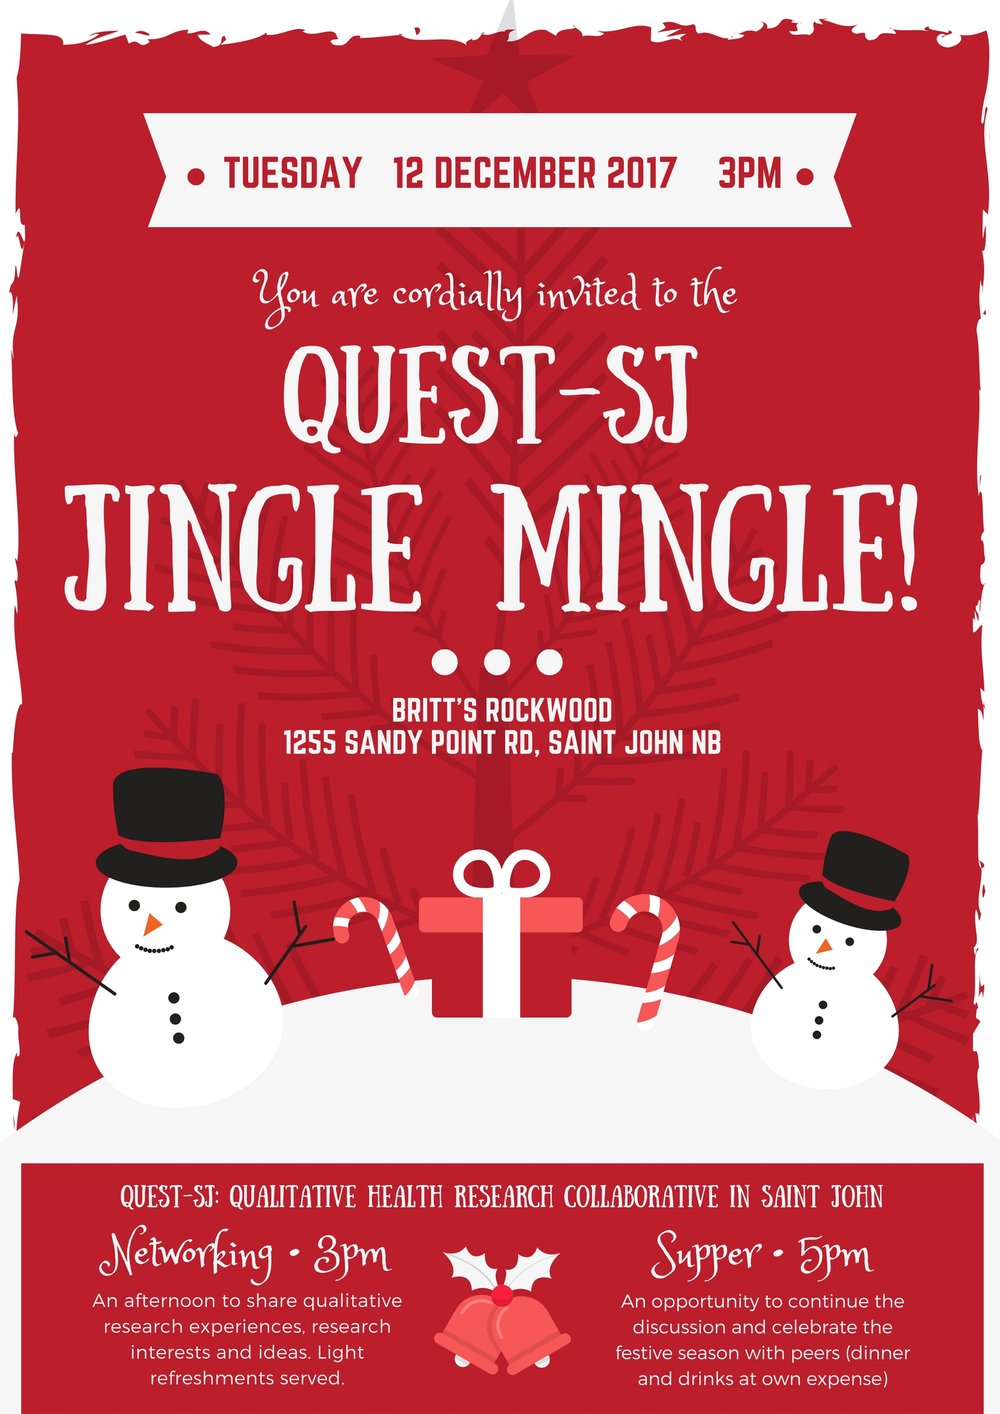 Jingle mingle! (1).jpg